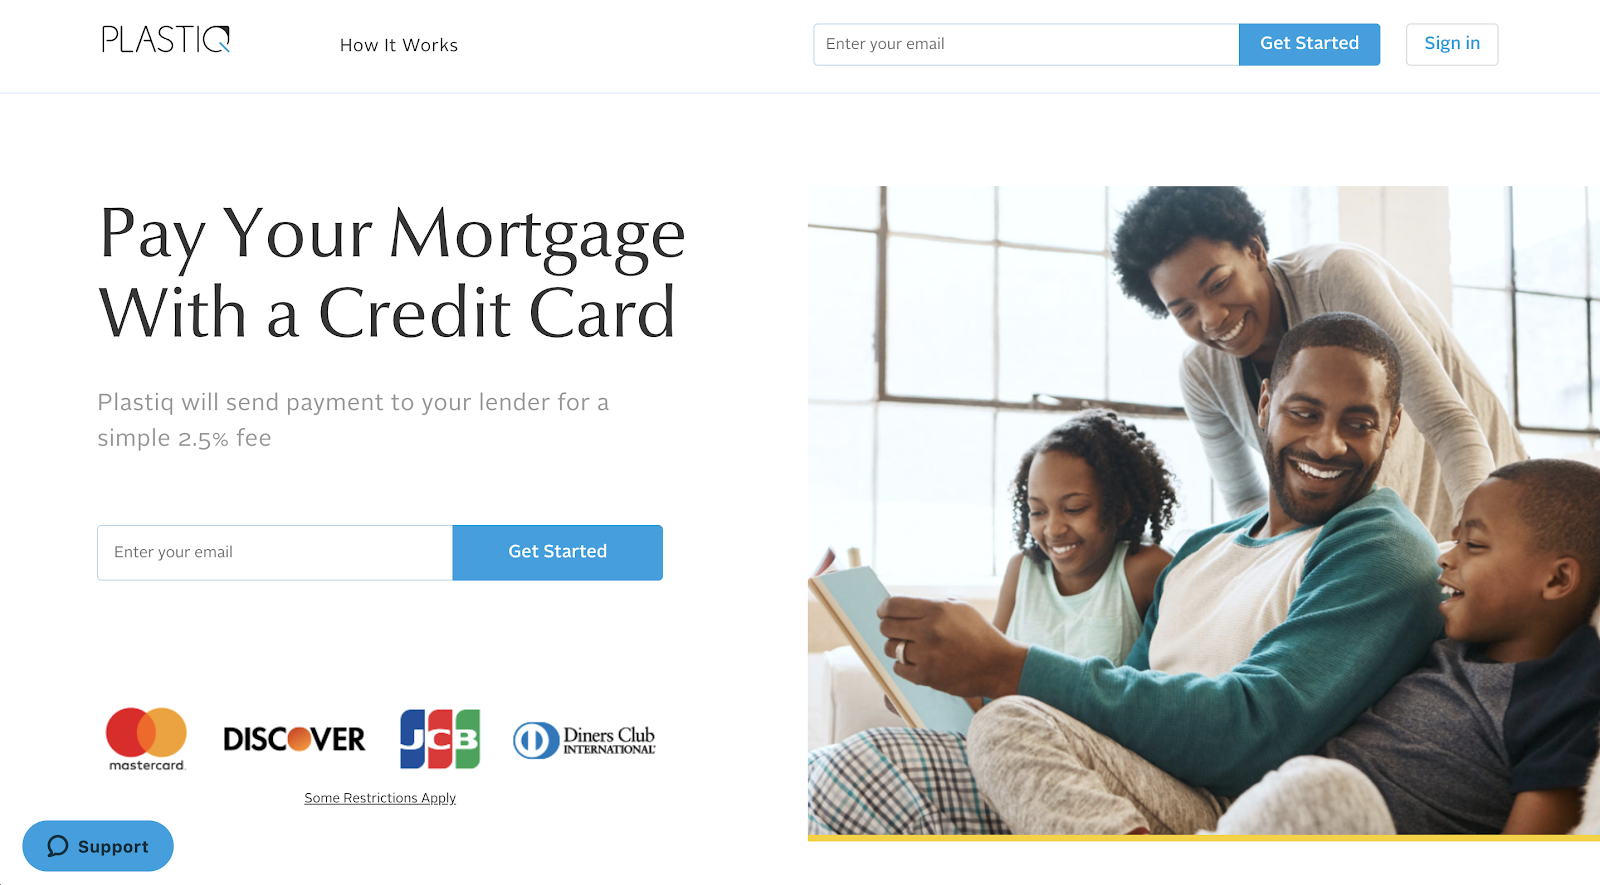 Pay Your Mortgage With a Credit Card Plastiq